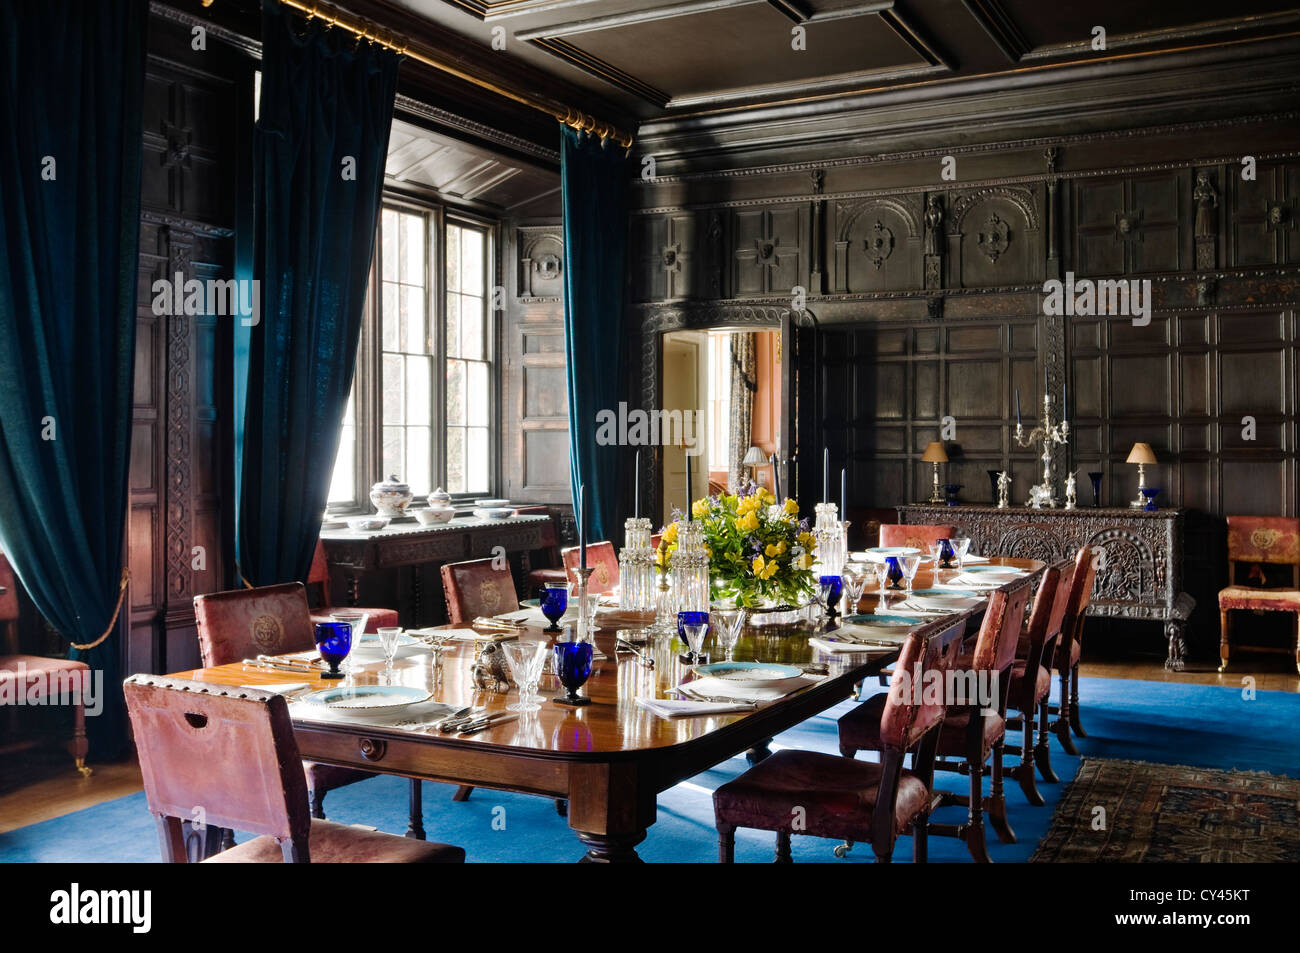 Royal wood tongue and groove panels - Dining Room With Original Elizabethan Wood Wall Panelling And Royal Blue Carpet Stock Image